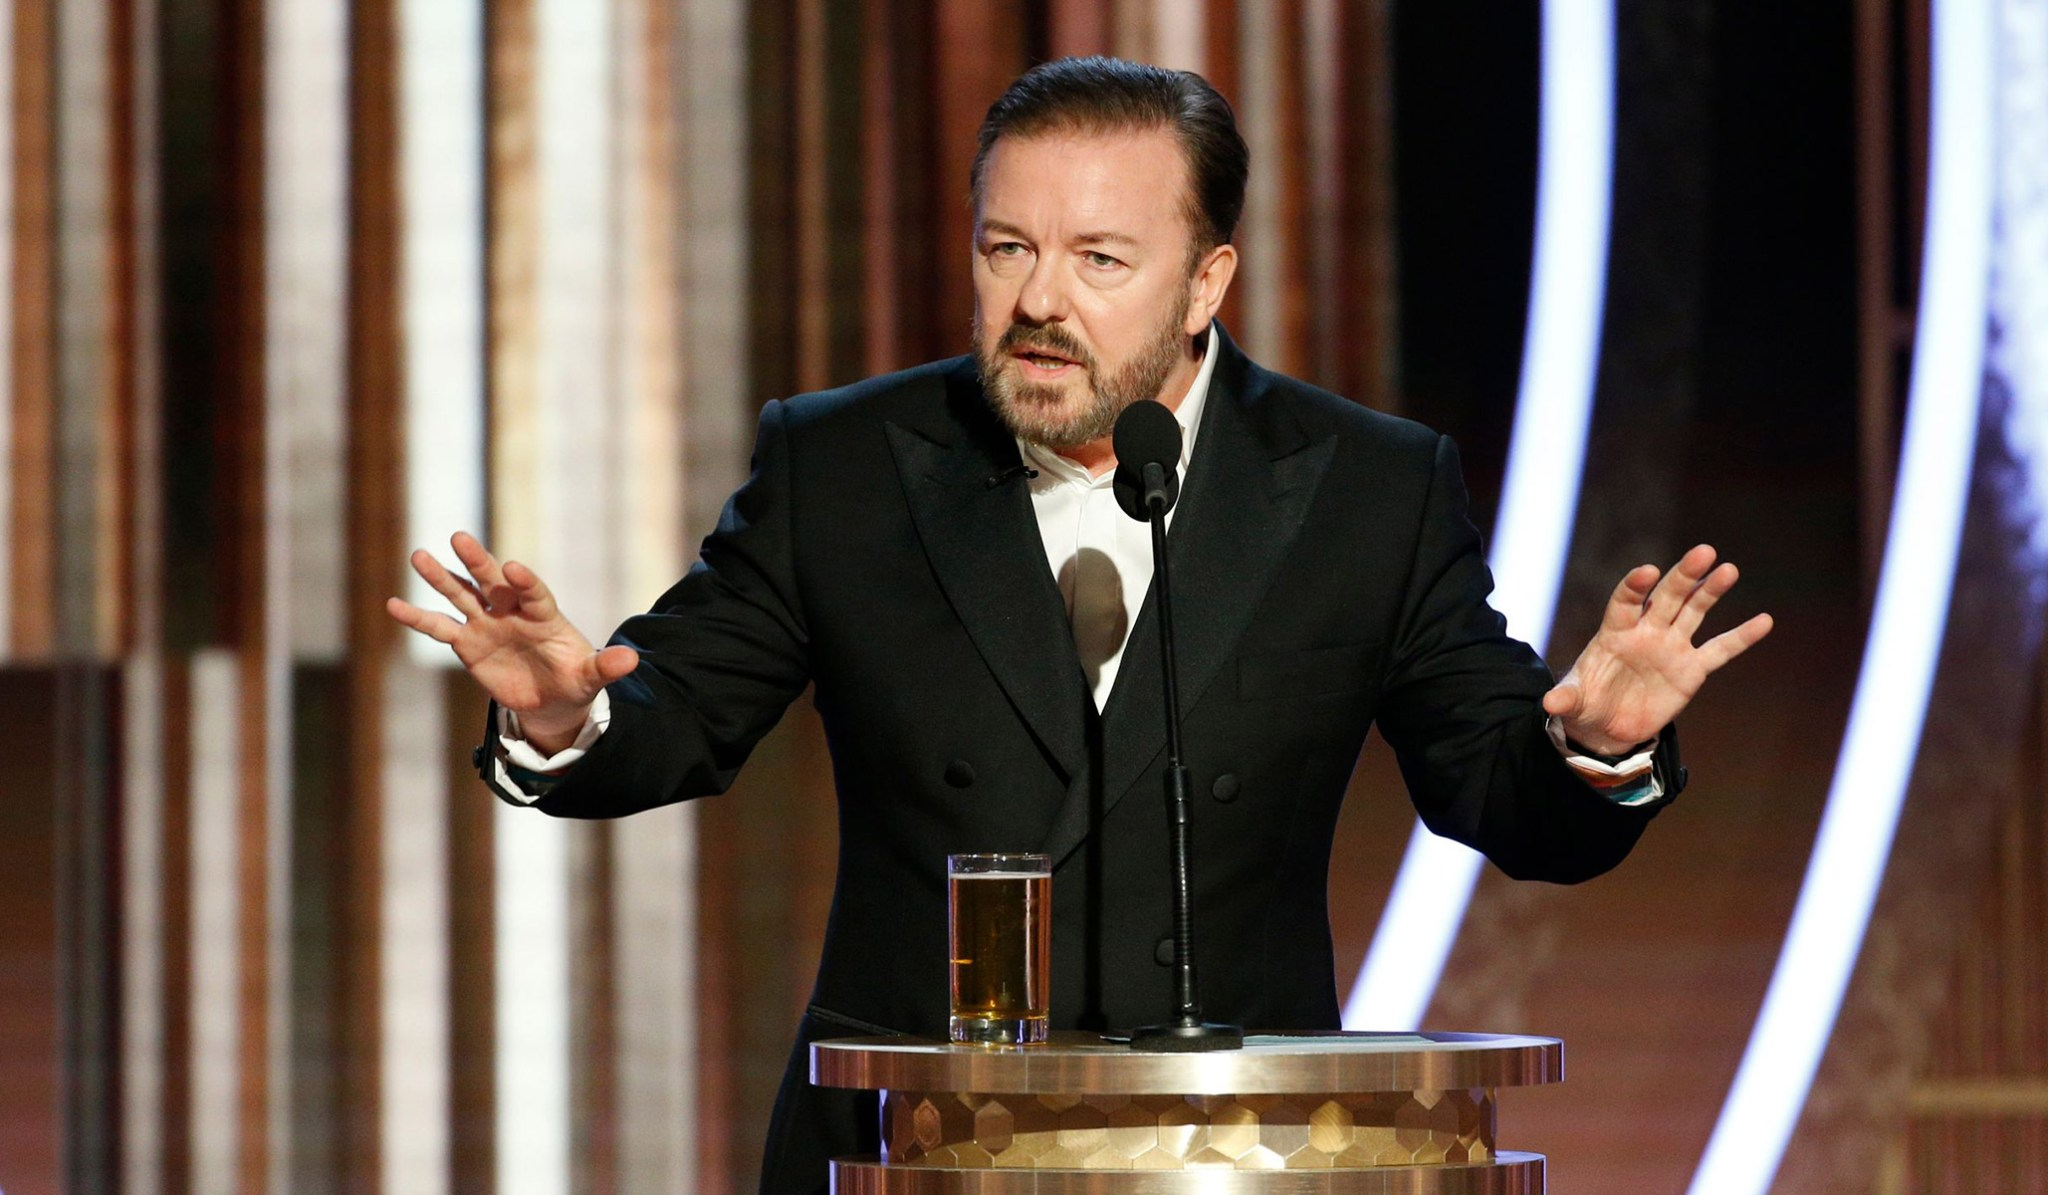 Ricky Gervais' Hilarious Roast Of Celebrities At Golden Globes